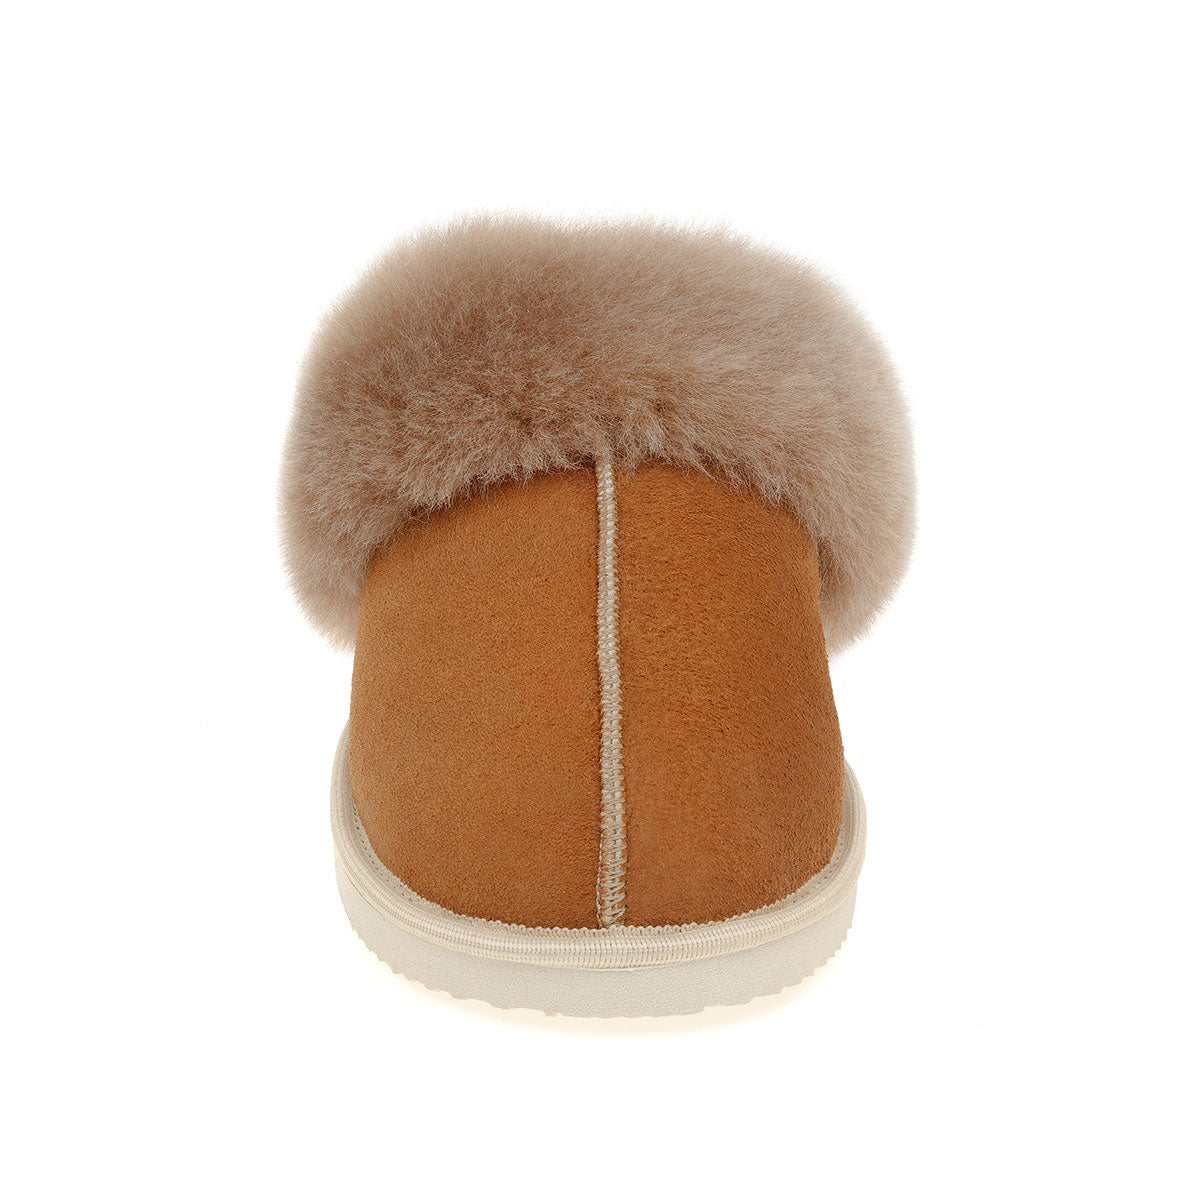 NEW Ines Sheepskin Cuff Mules - Chestnut